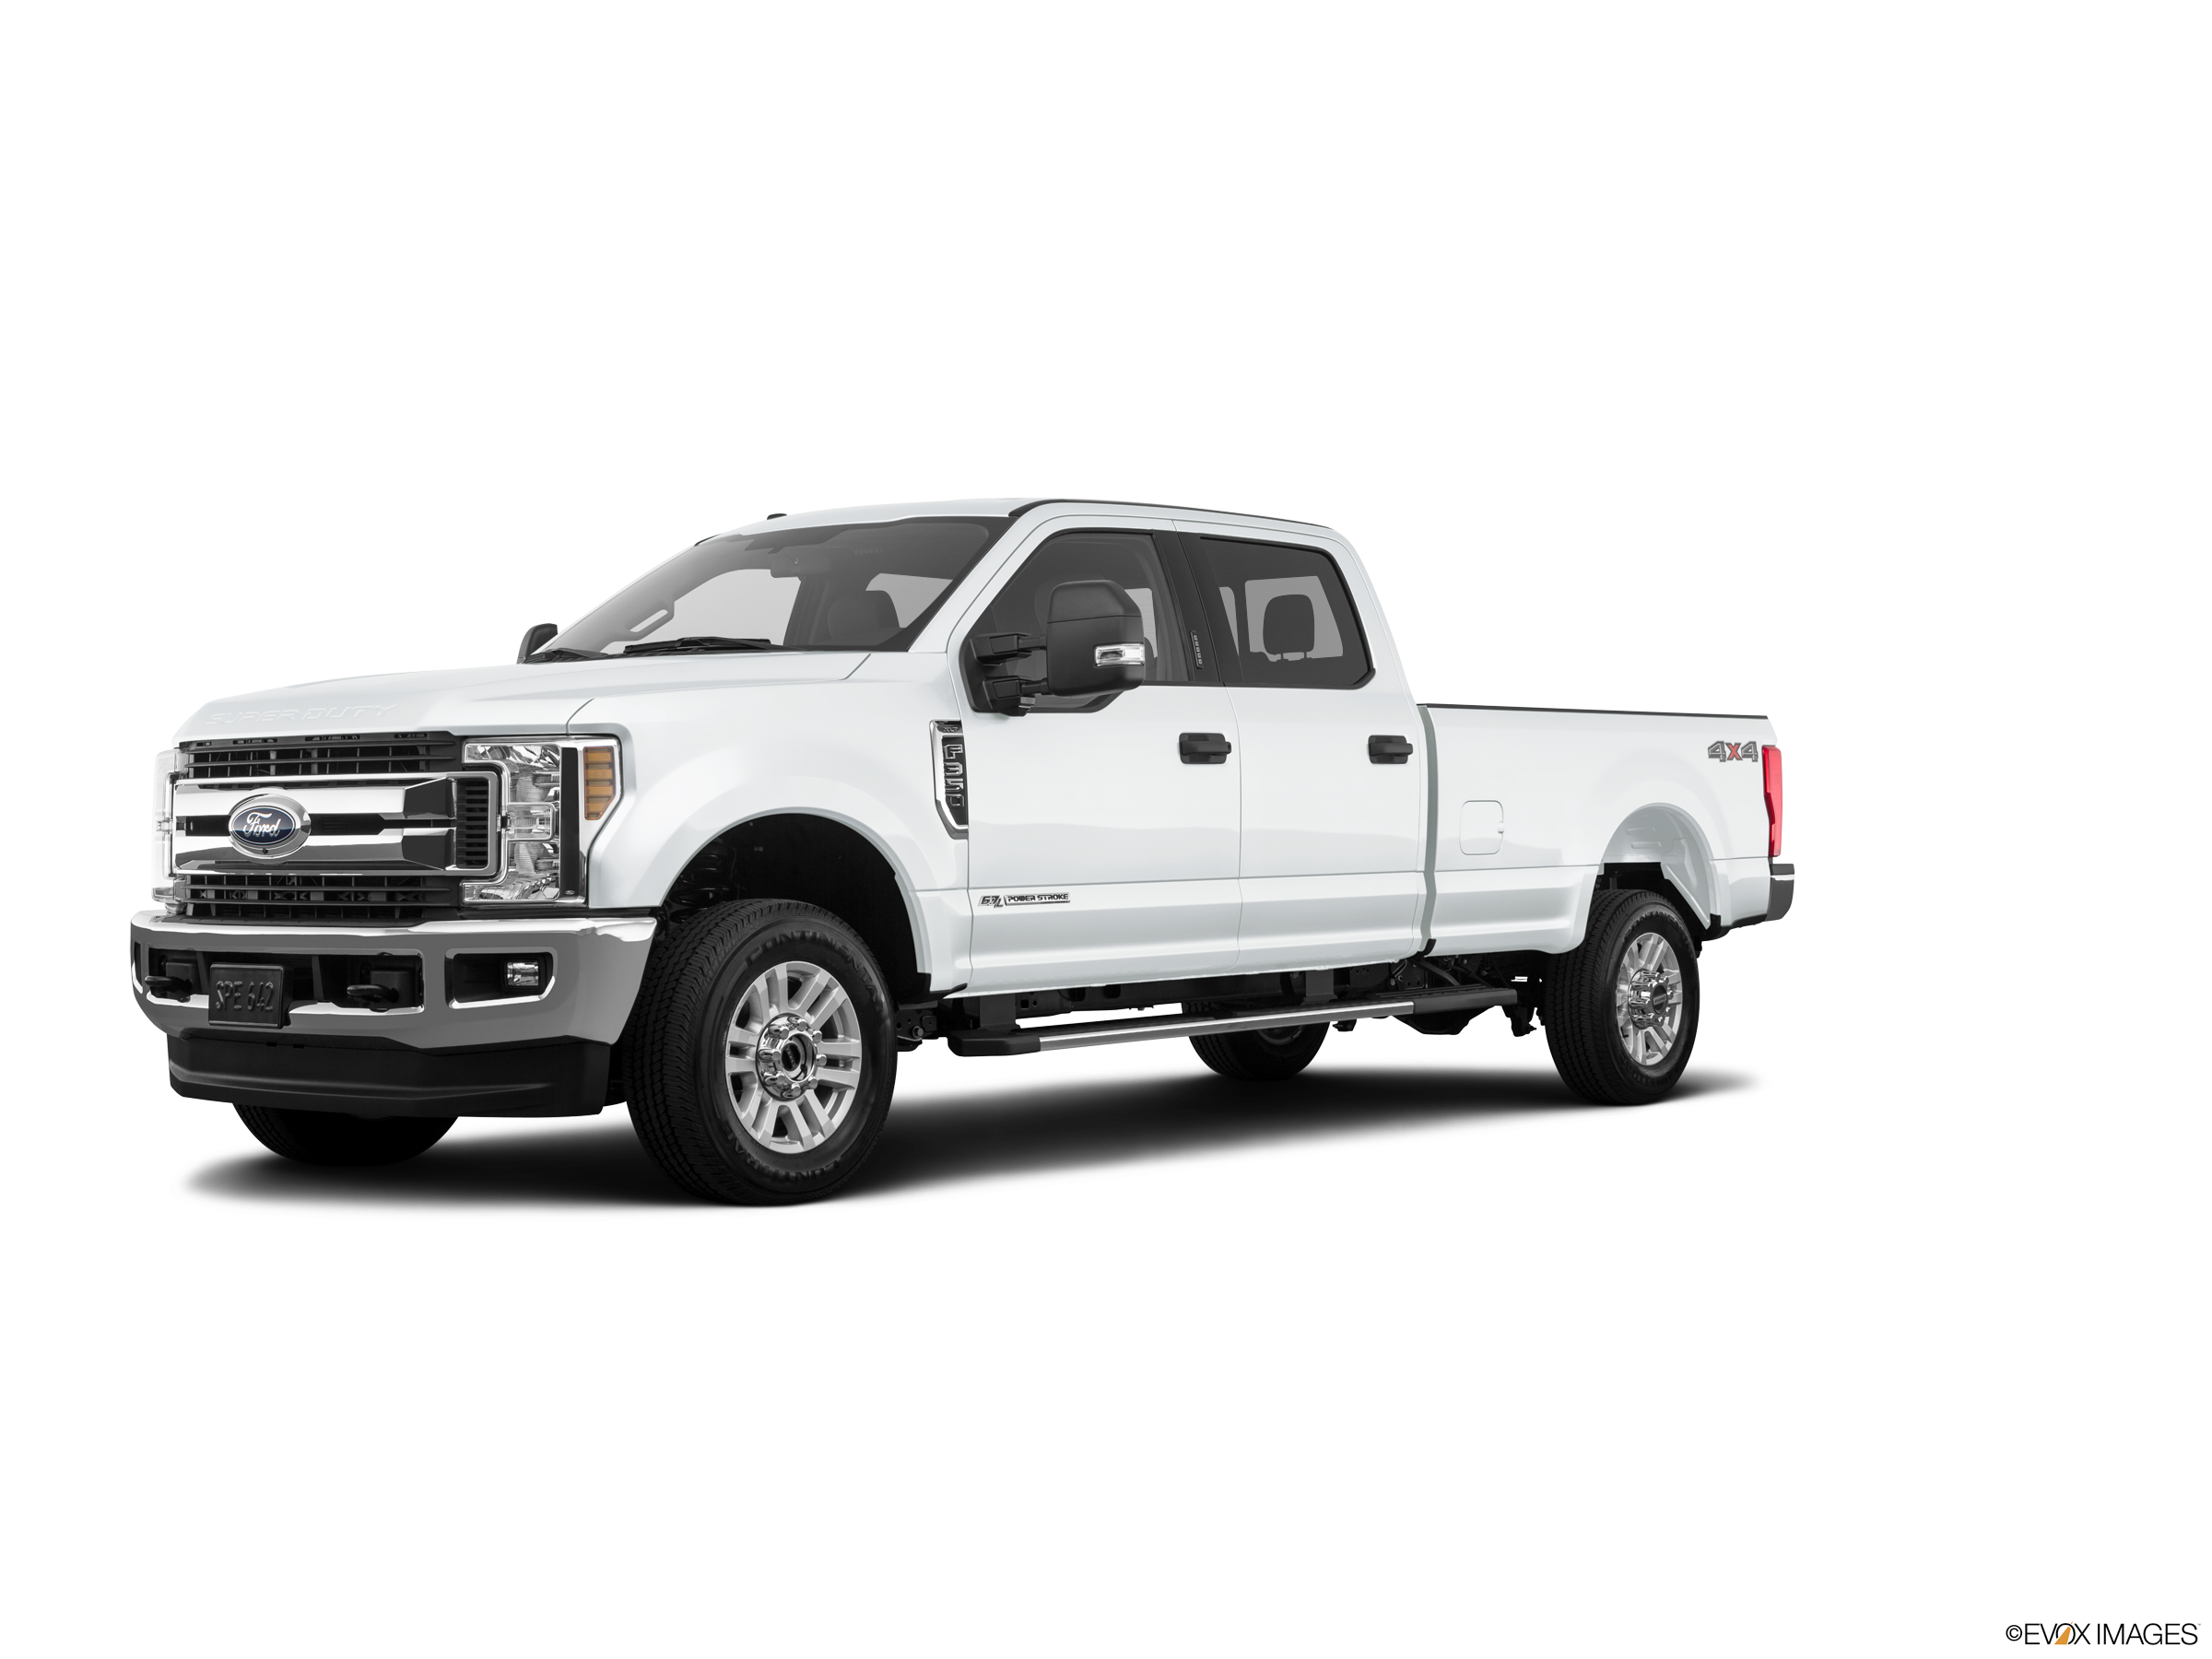 Top Expert Rated Trucks of 2019 - 2019 Ford F350 Super Duty Crew Cab